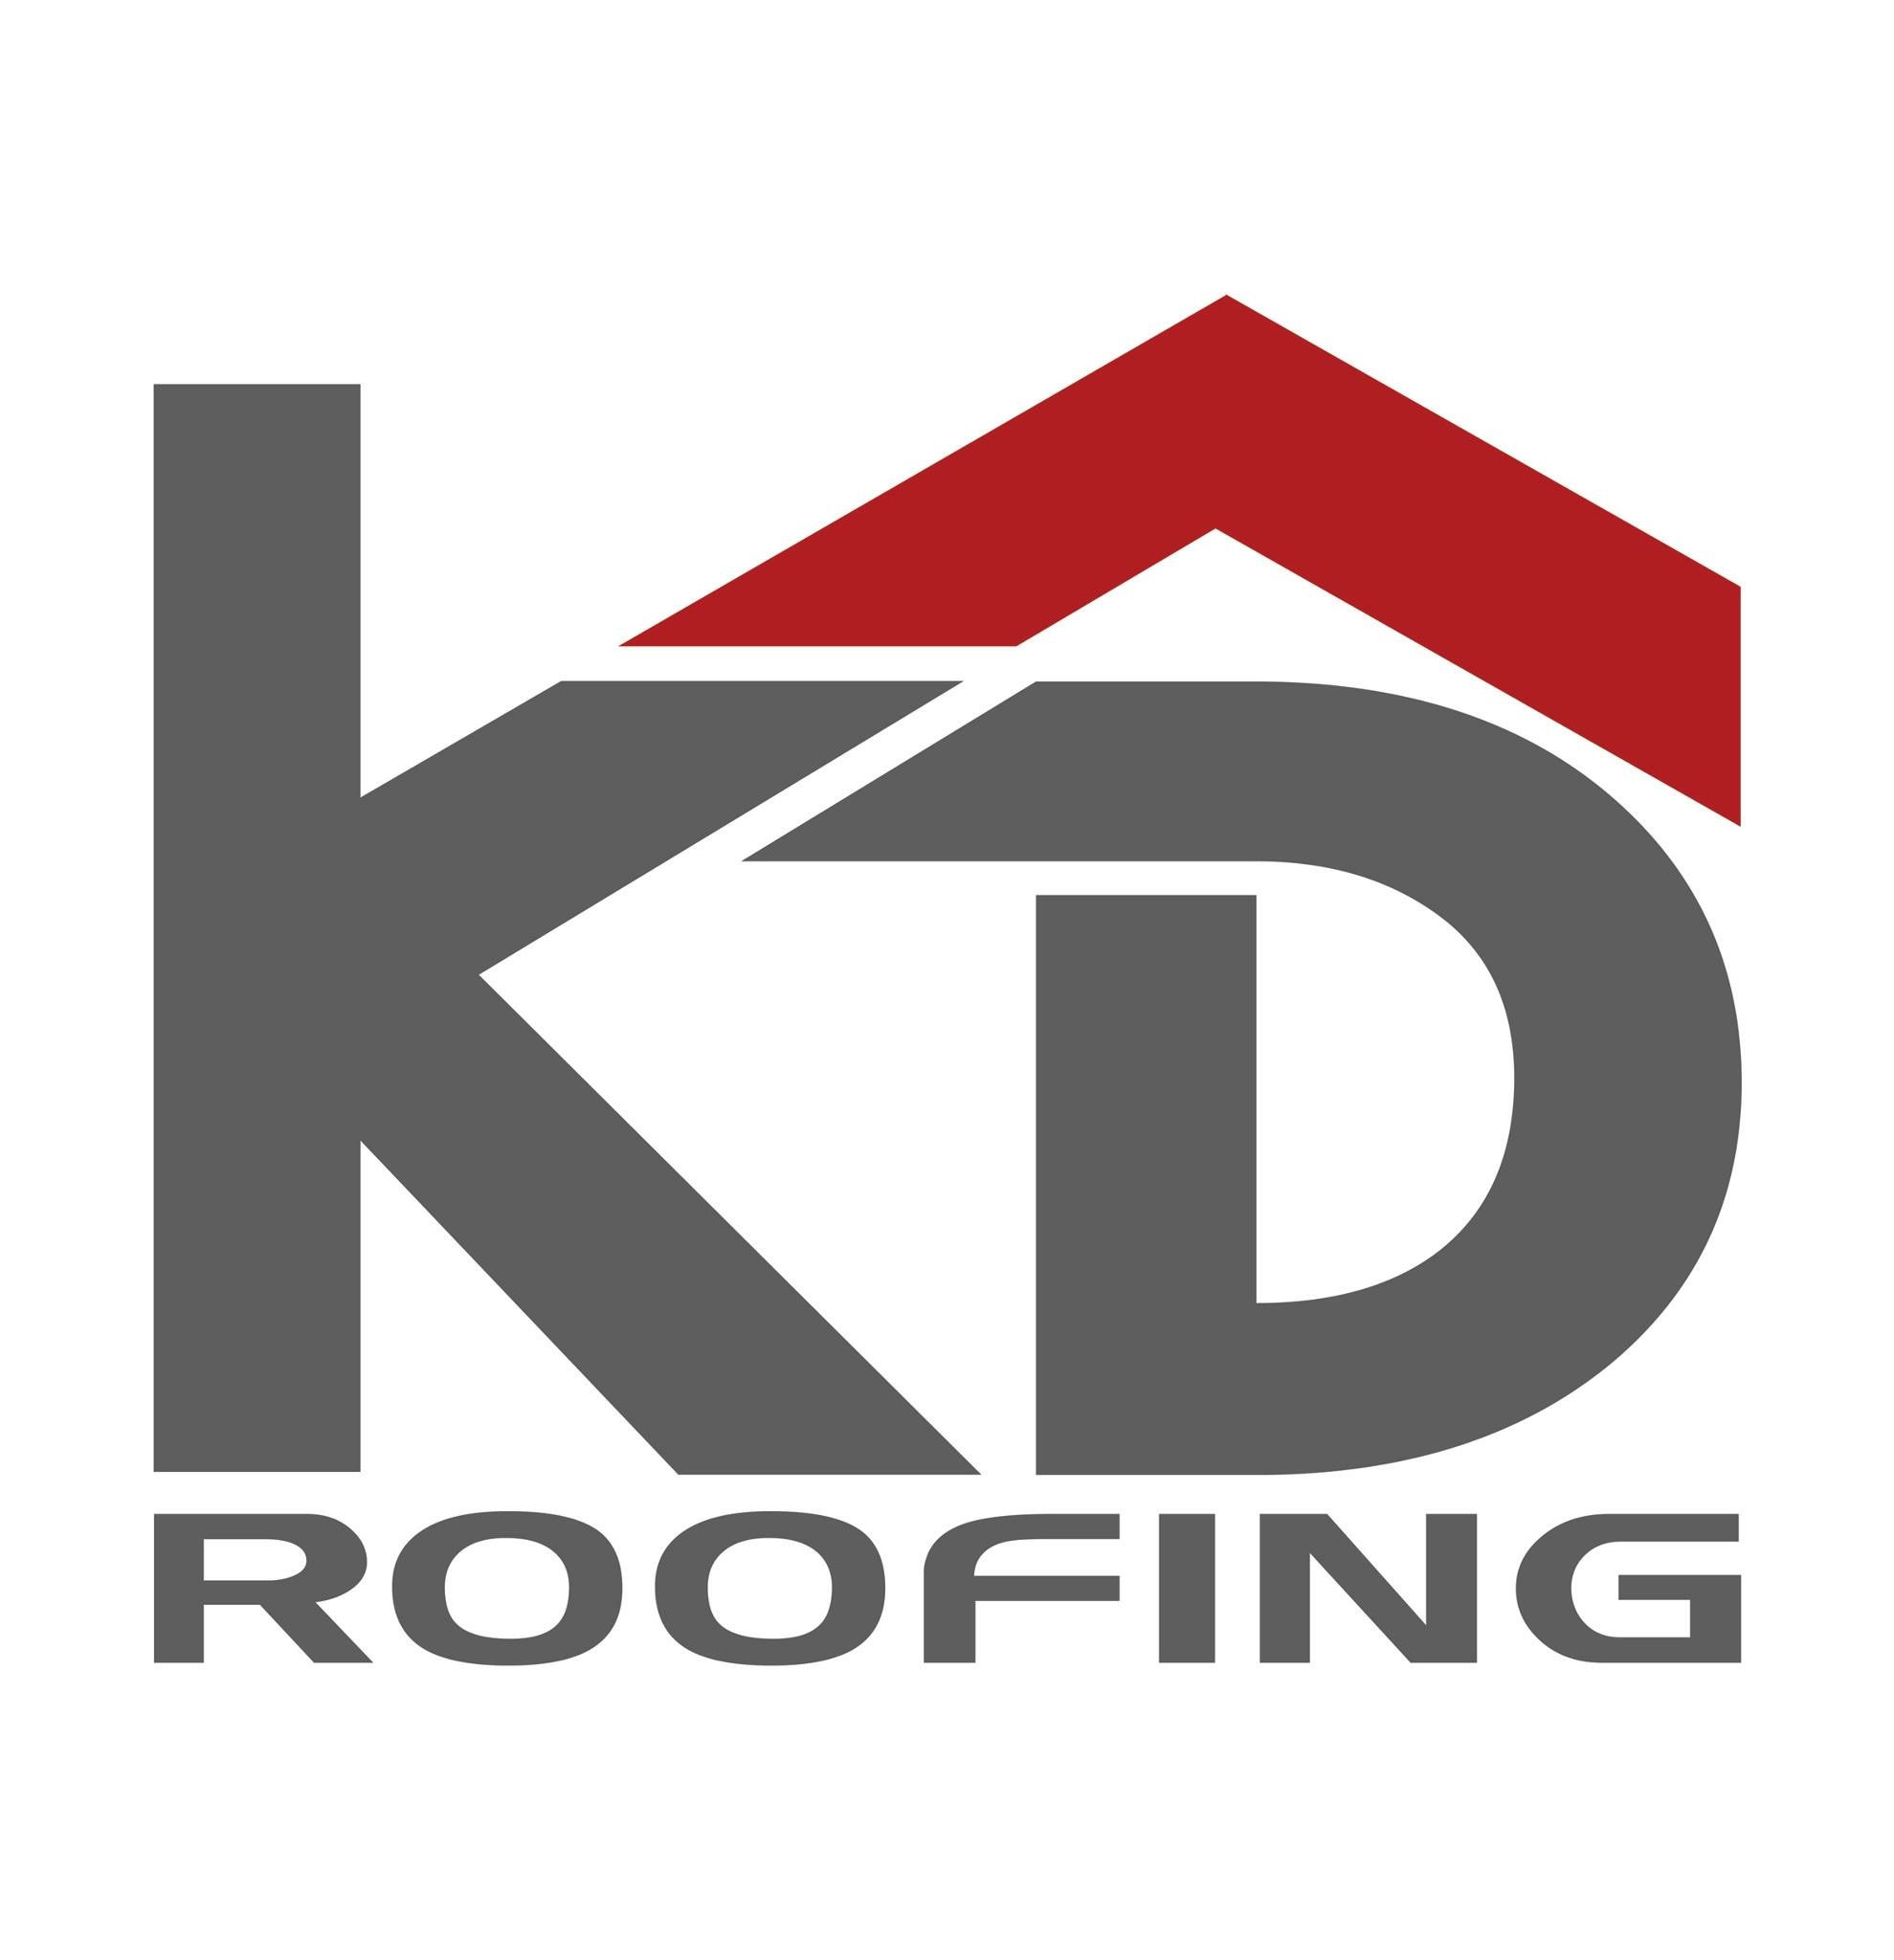 KD Roofing